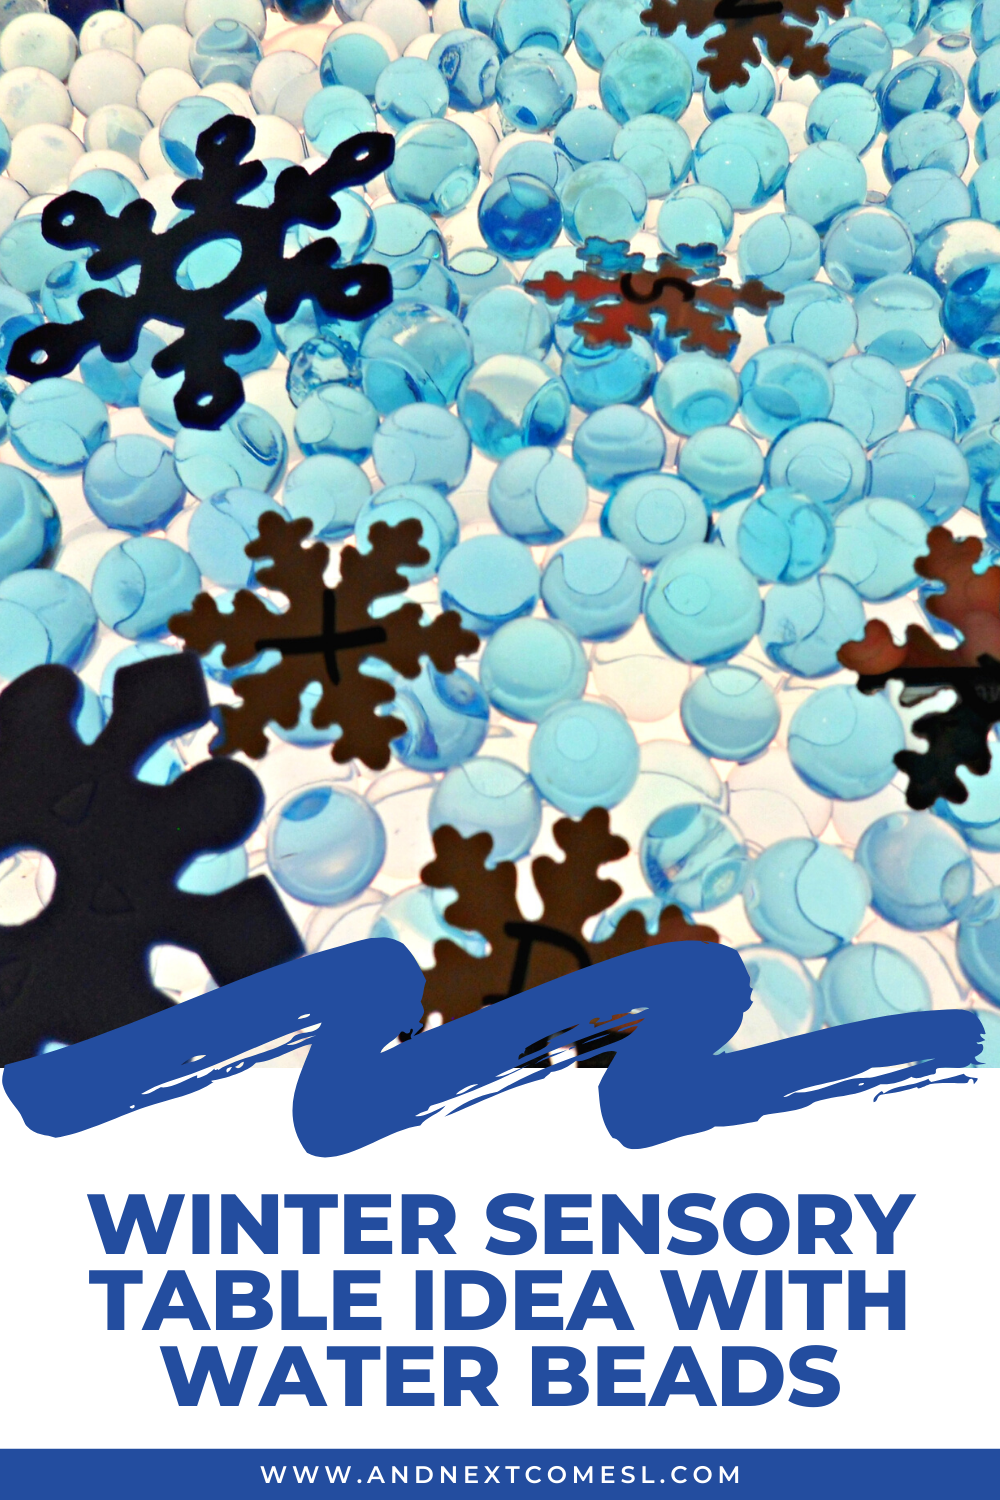 Preschool winter sensory table idea with water beads - great sensory bin idea for on (or off!) the light table